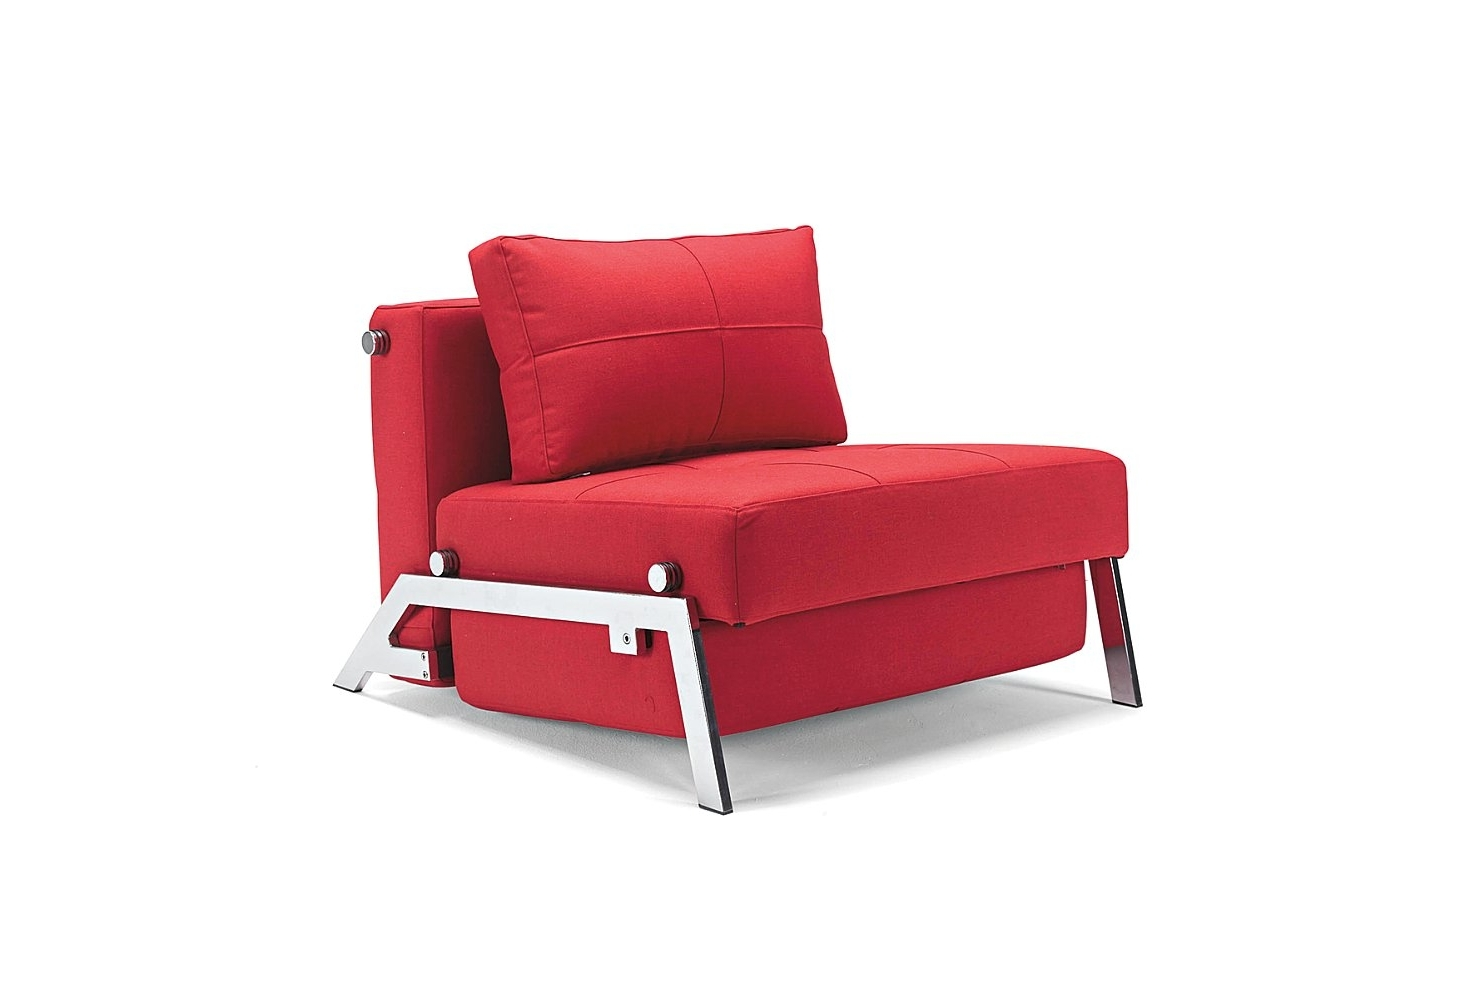 Newest Single Sofa Bed Moblerfurniture Red Color – Lentine Marine (View 19 of 20)